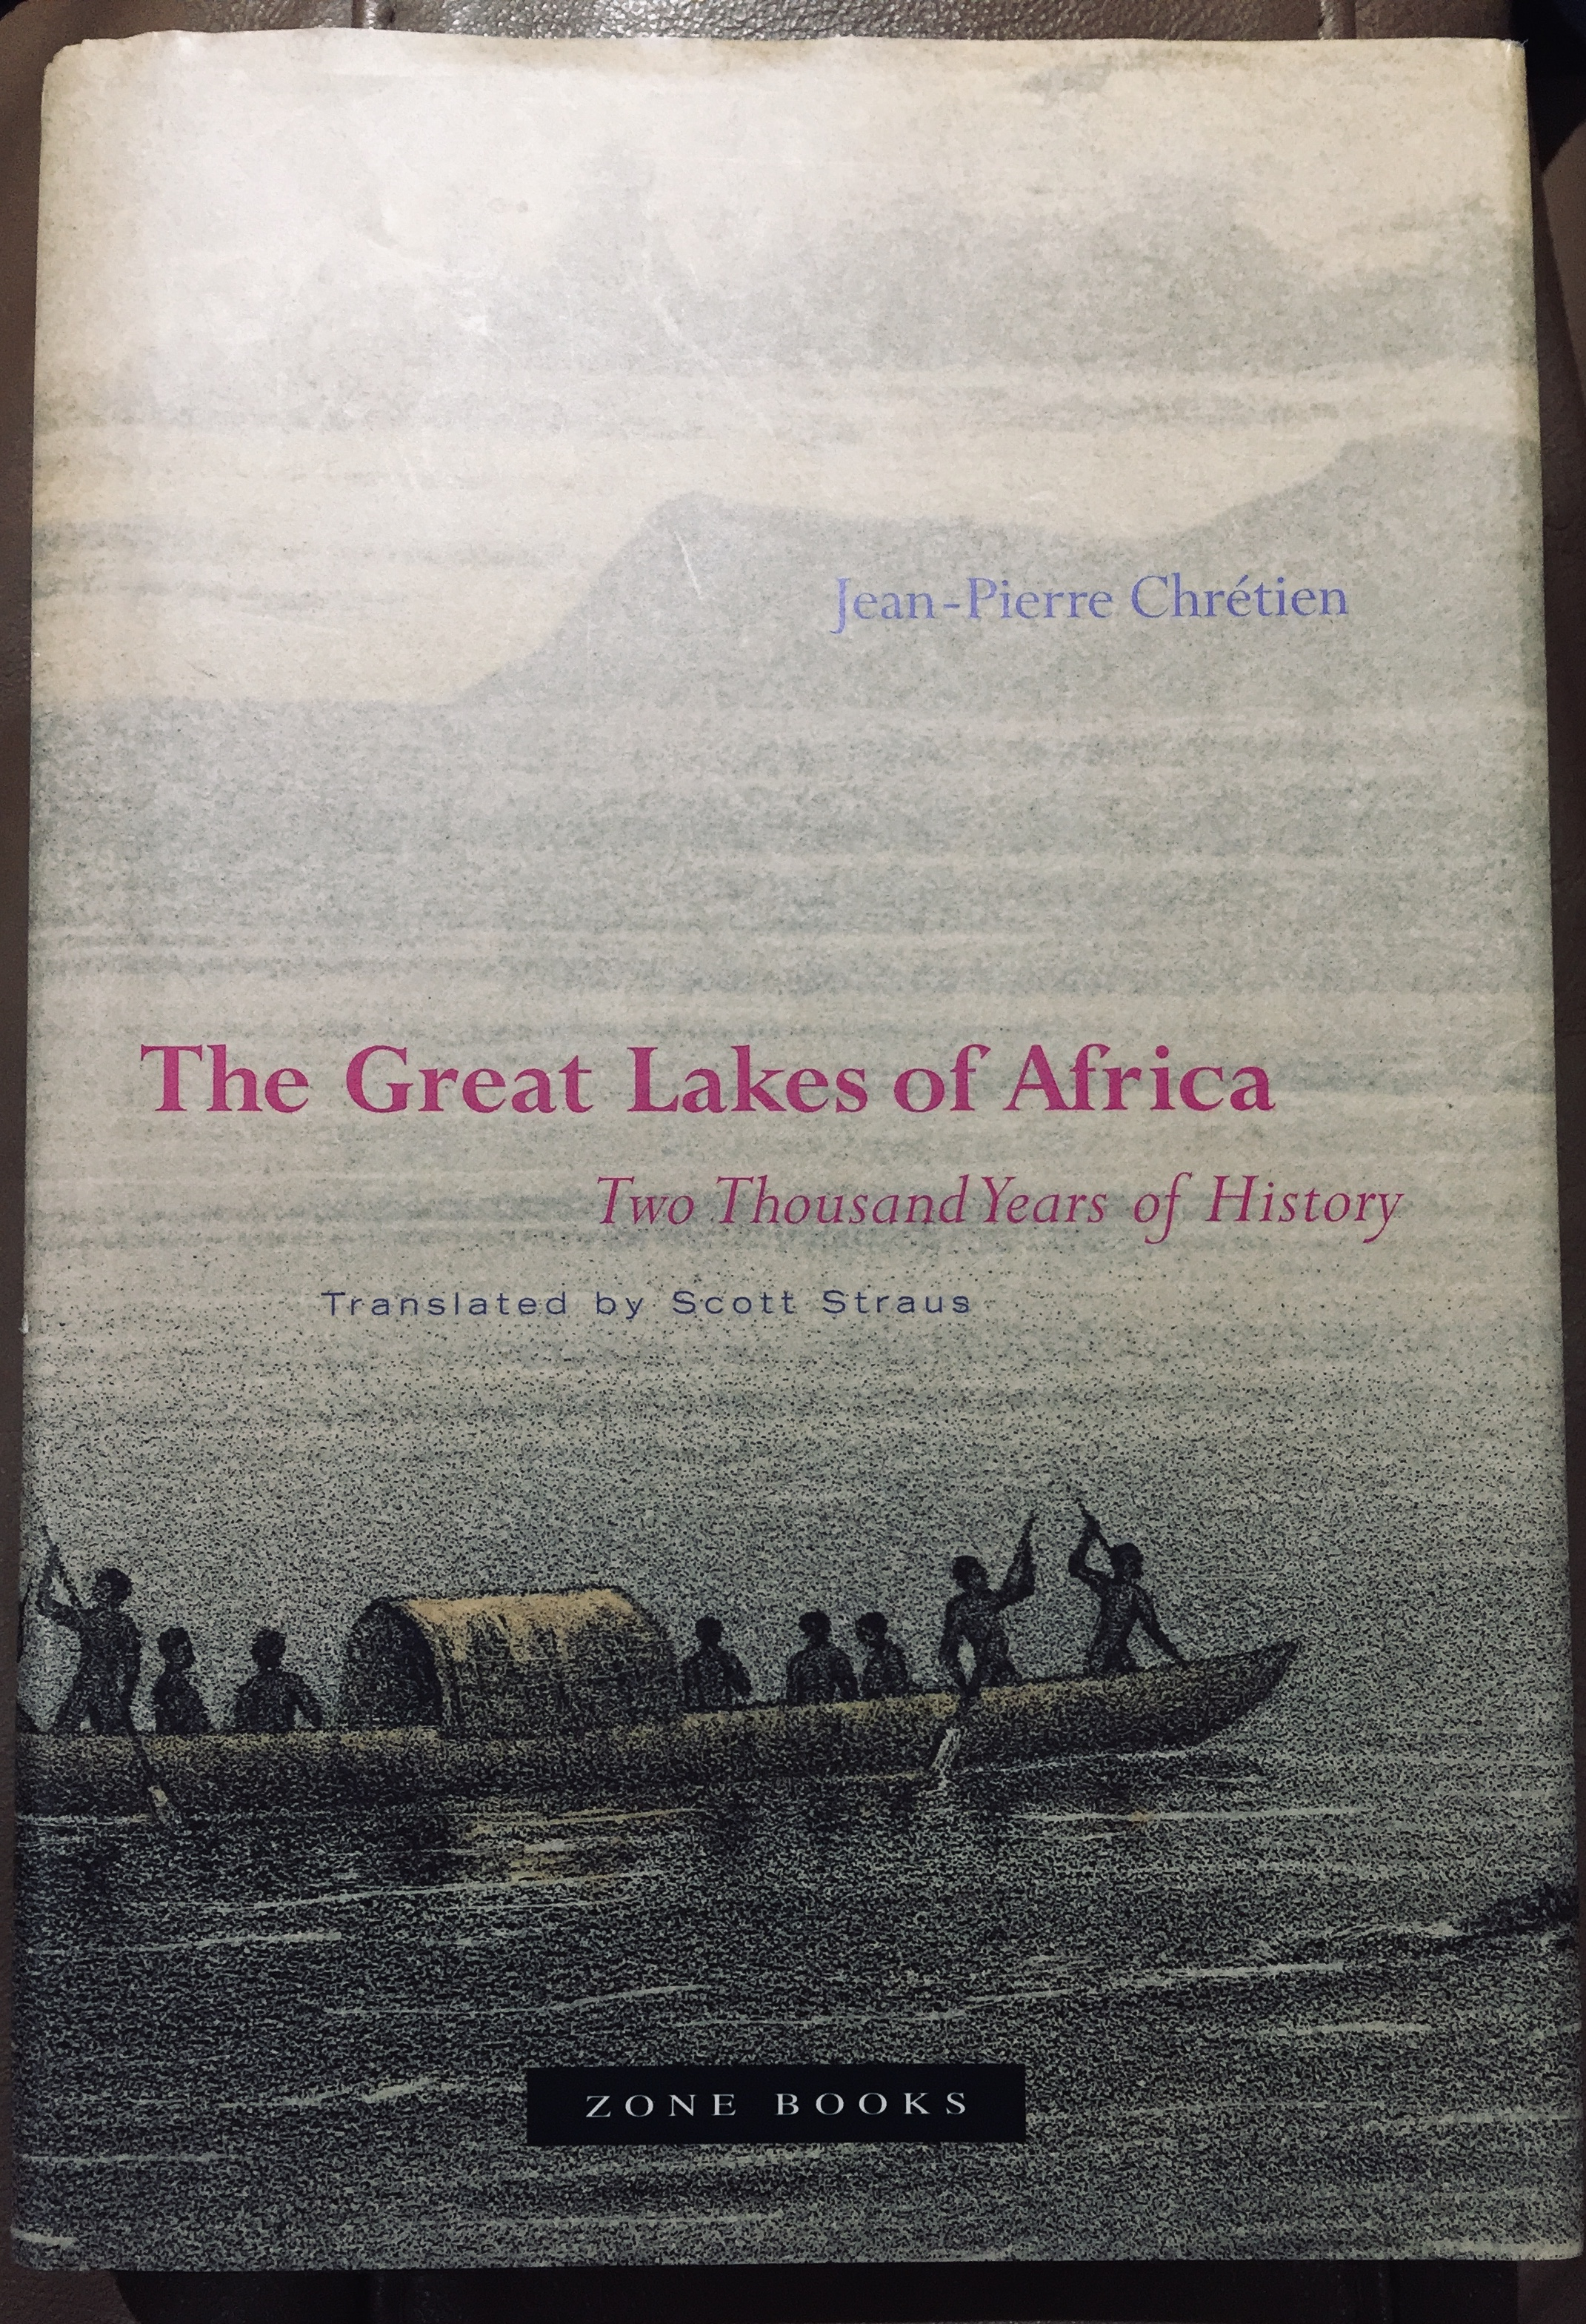 The Great Lakes of Africa: Two Thousand Years of History – By Jean-Pierre Chretien